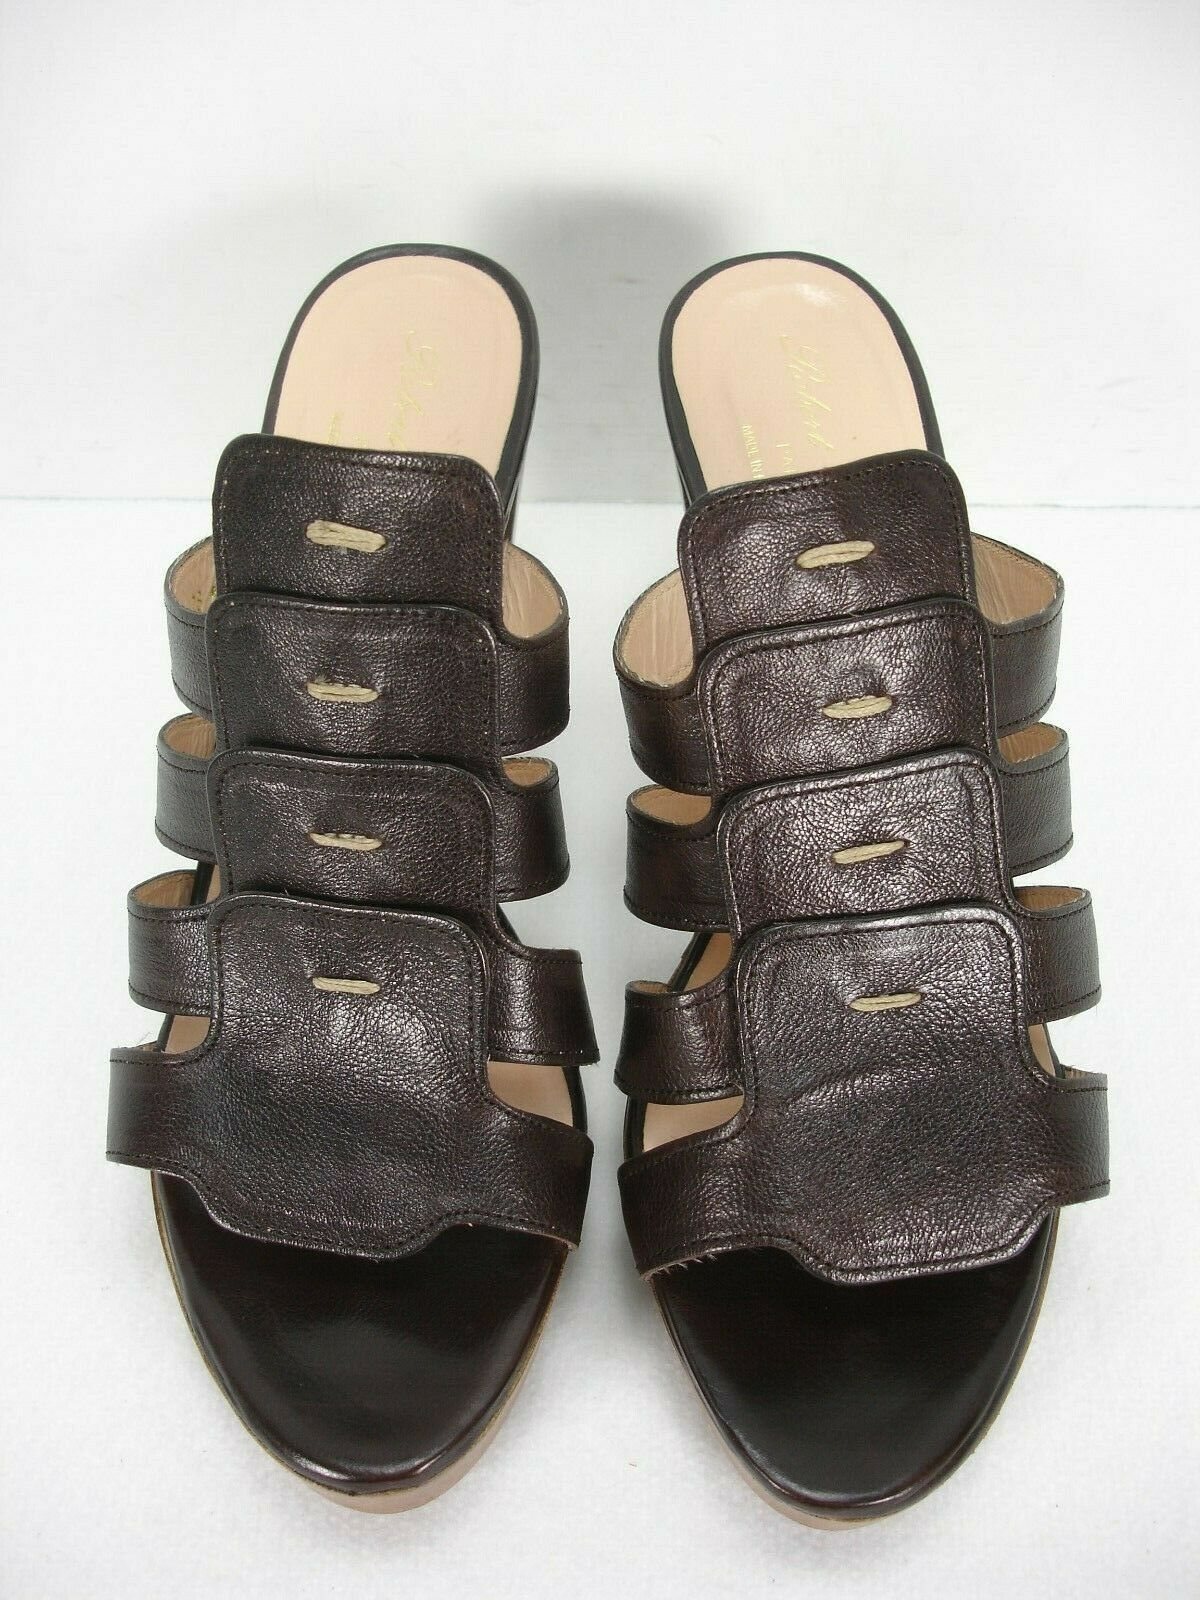 ROBERT CLERGERIE BROWN LEATHER LEATHER LEATHER OPEN TOE SLIDES SANDALS HEELS WOMEN'S 9.5 B 8d42ee